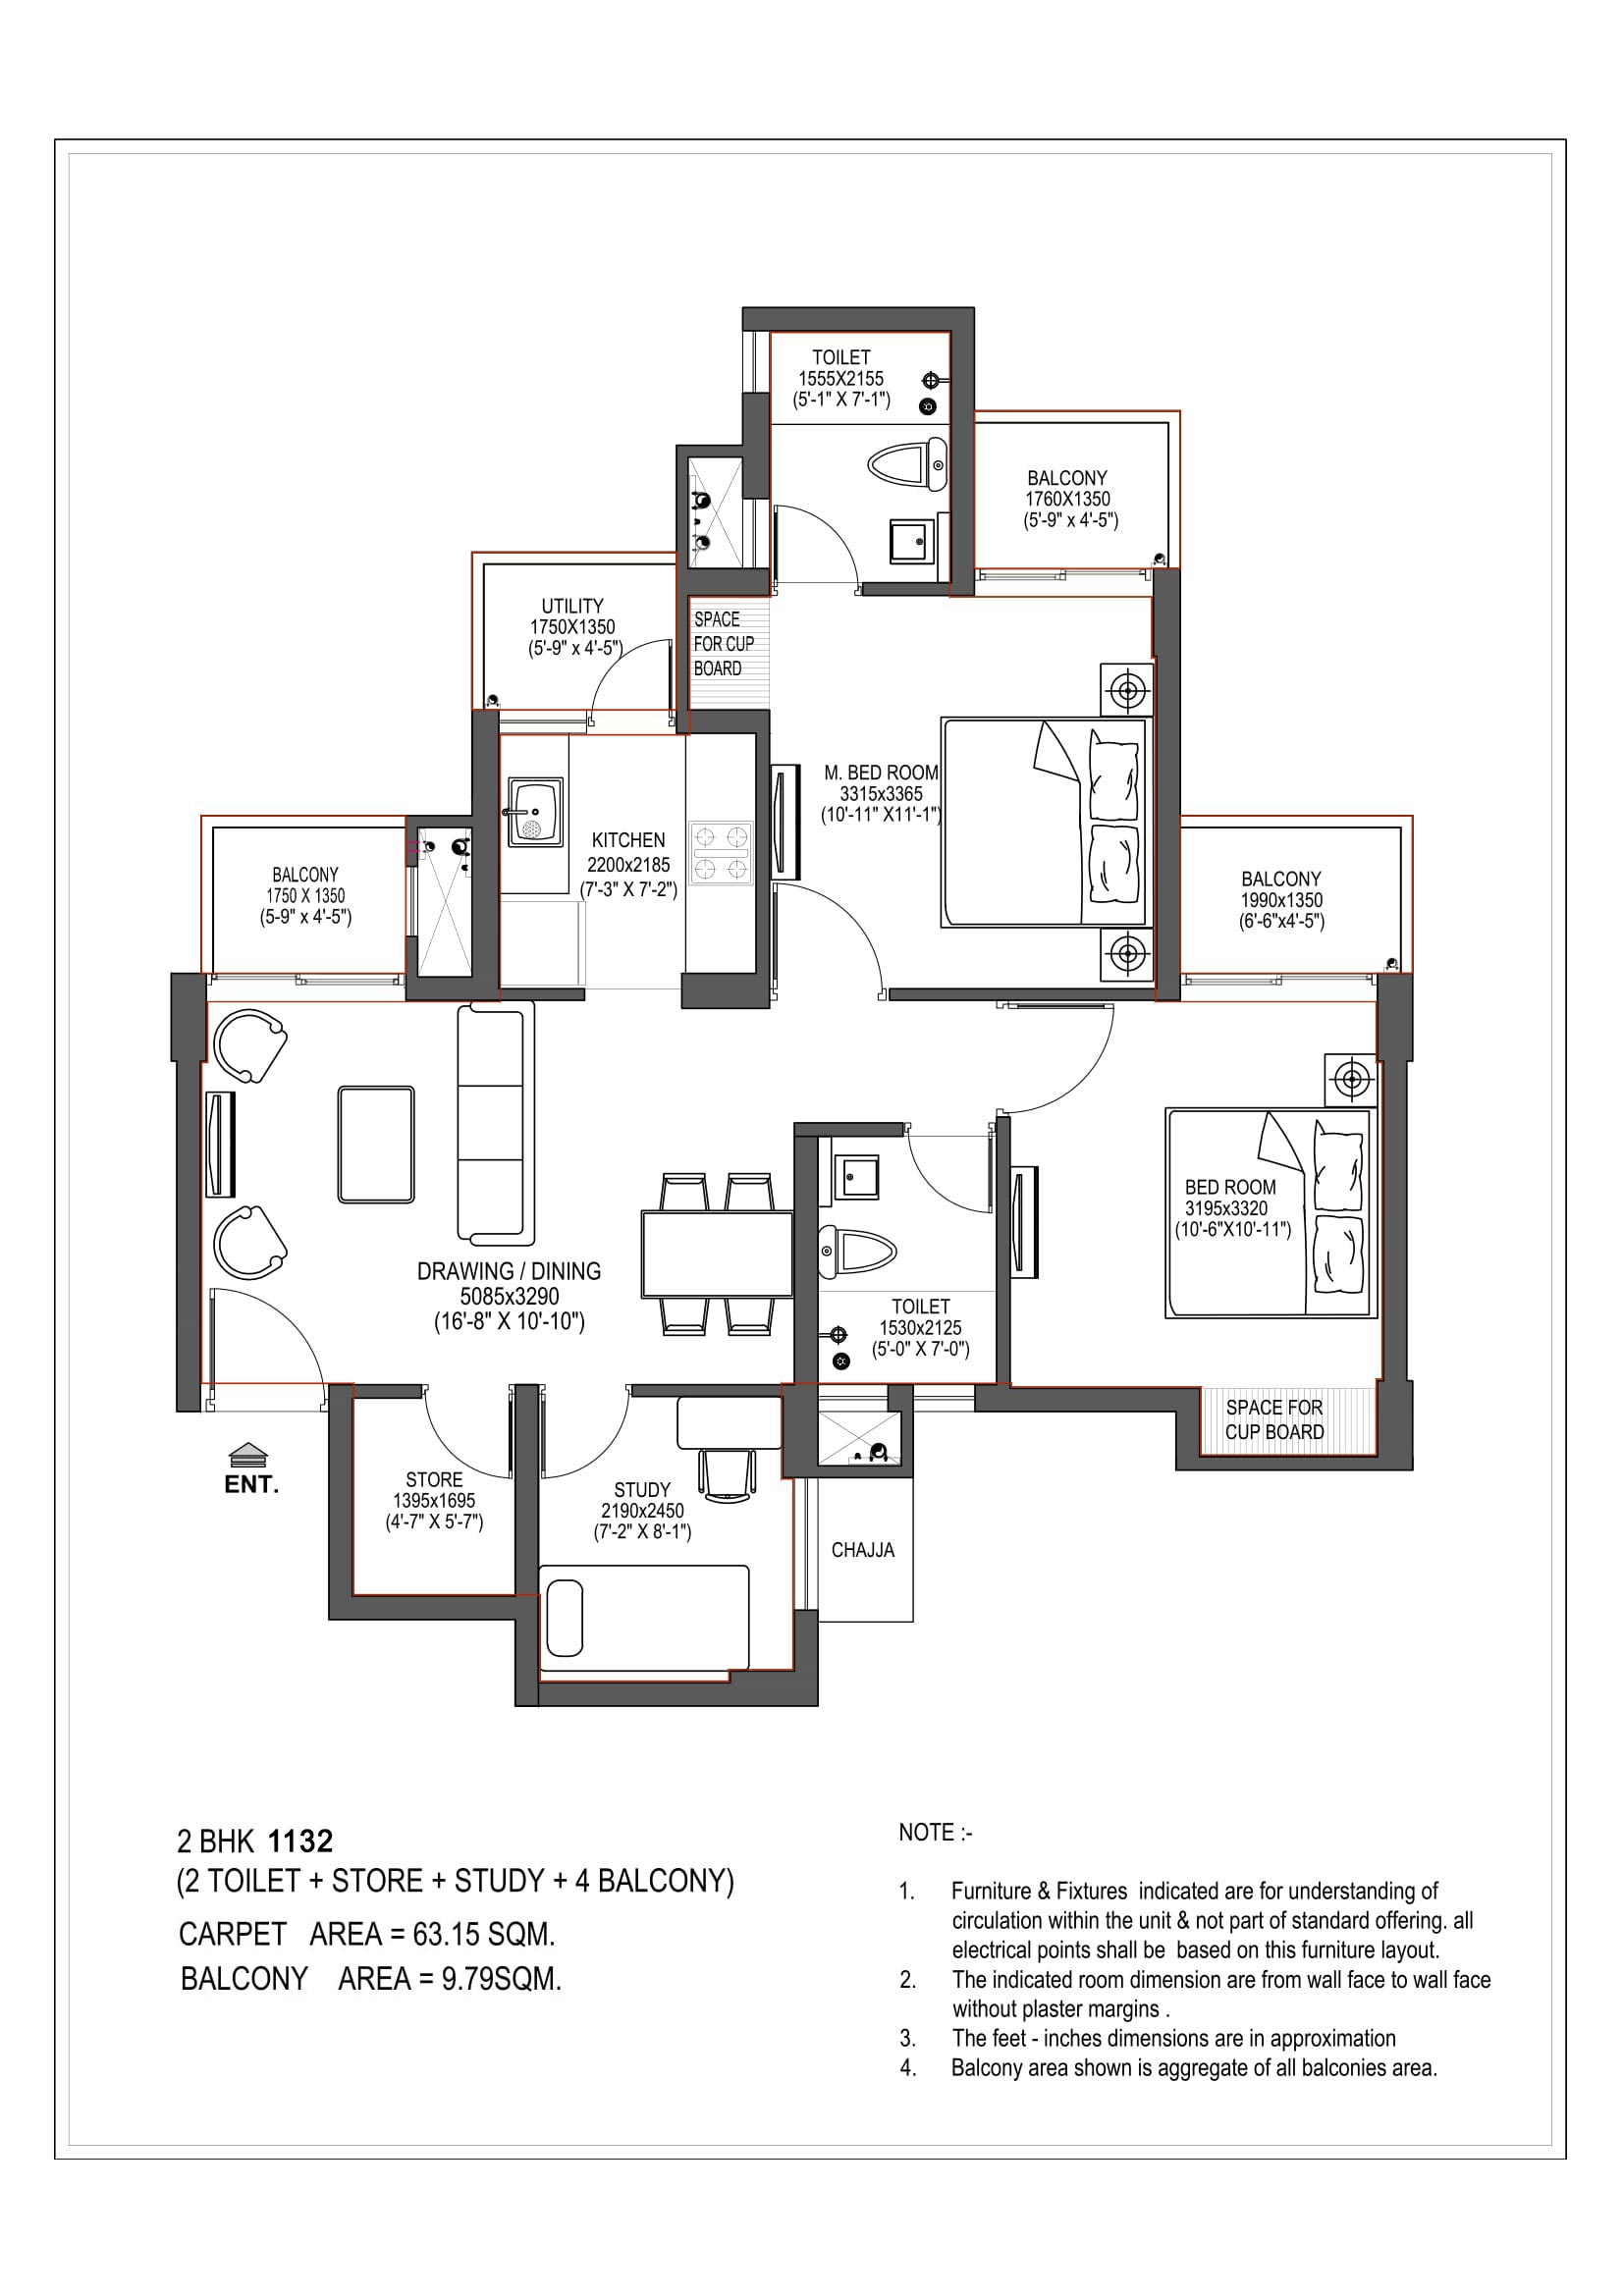 2bhk Plan Dimension Zion Star Zion Star